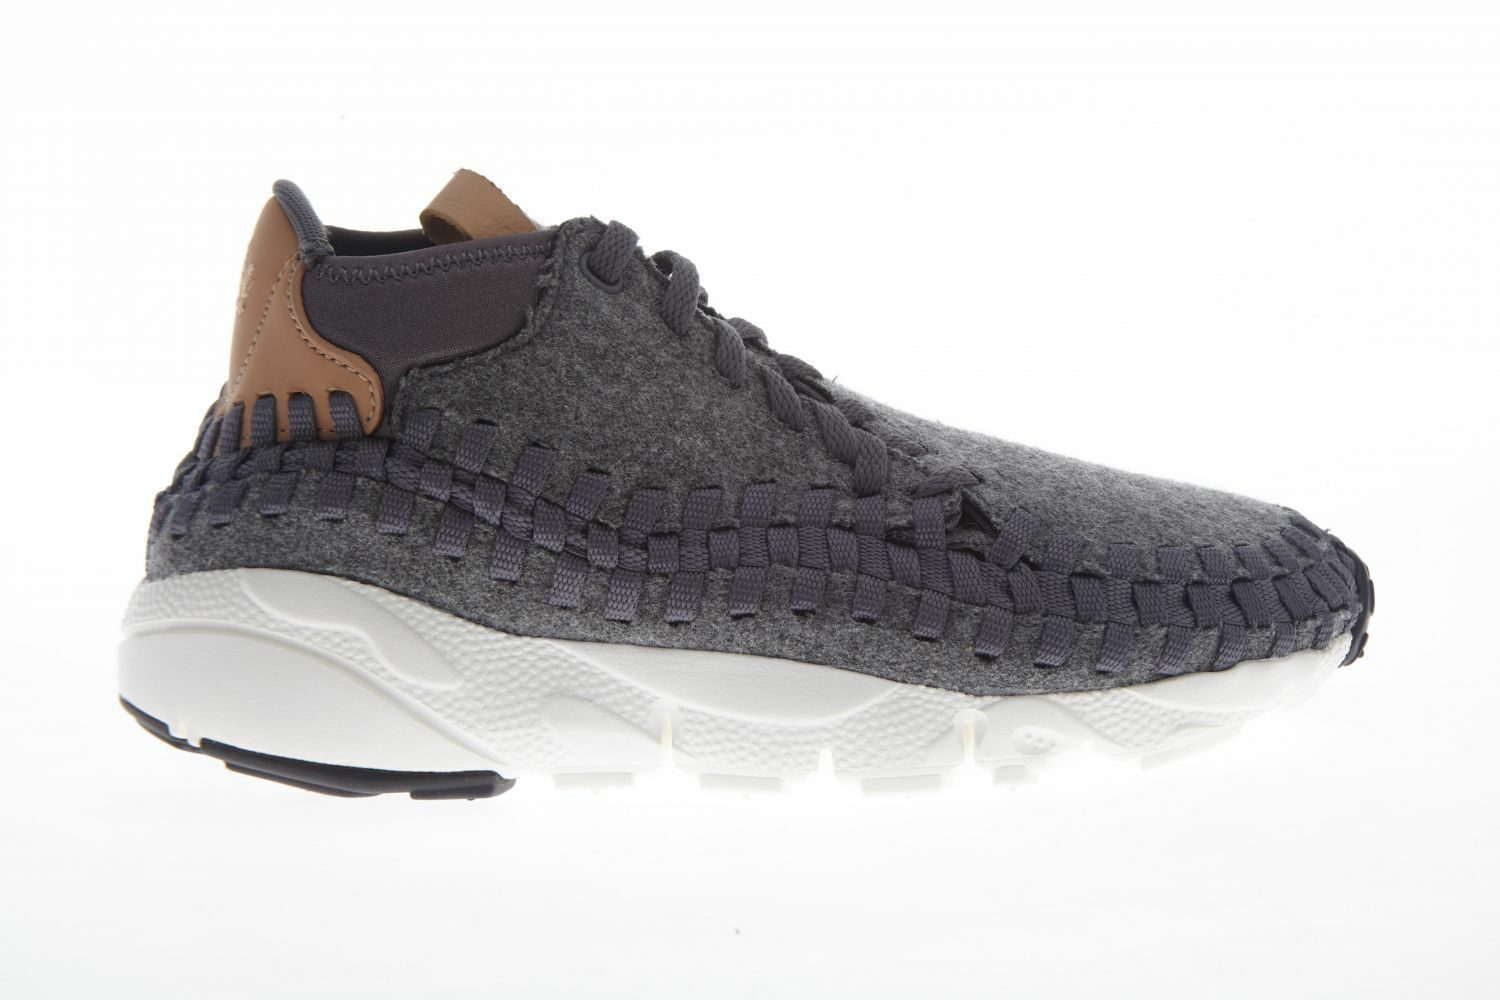 Nike Air Footscape Woven Chukka SE Hommes 857874-002 Dark Gris Tan Chaussures